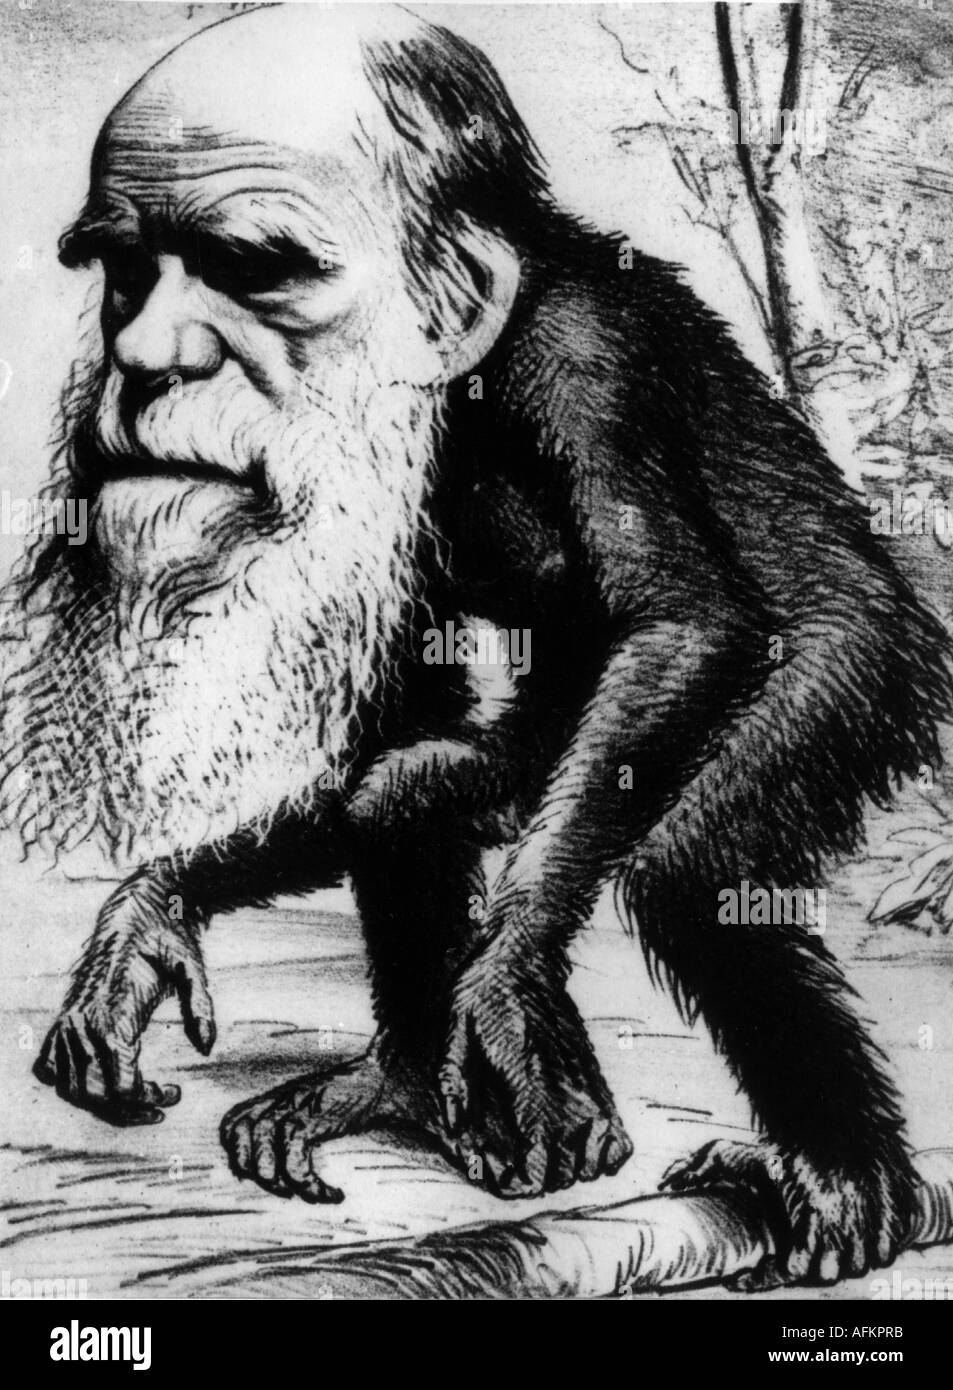 Darwin, Charles Robert, 12.2.1809 - 19.4.1882, British naturalist, caricature, as an ape, drawing, 19th century, Additional-Rights-Clearances-NA - Stock Image